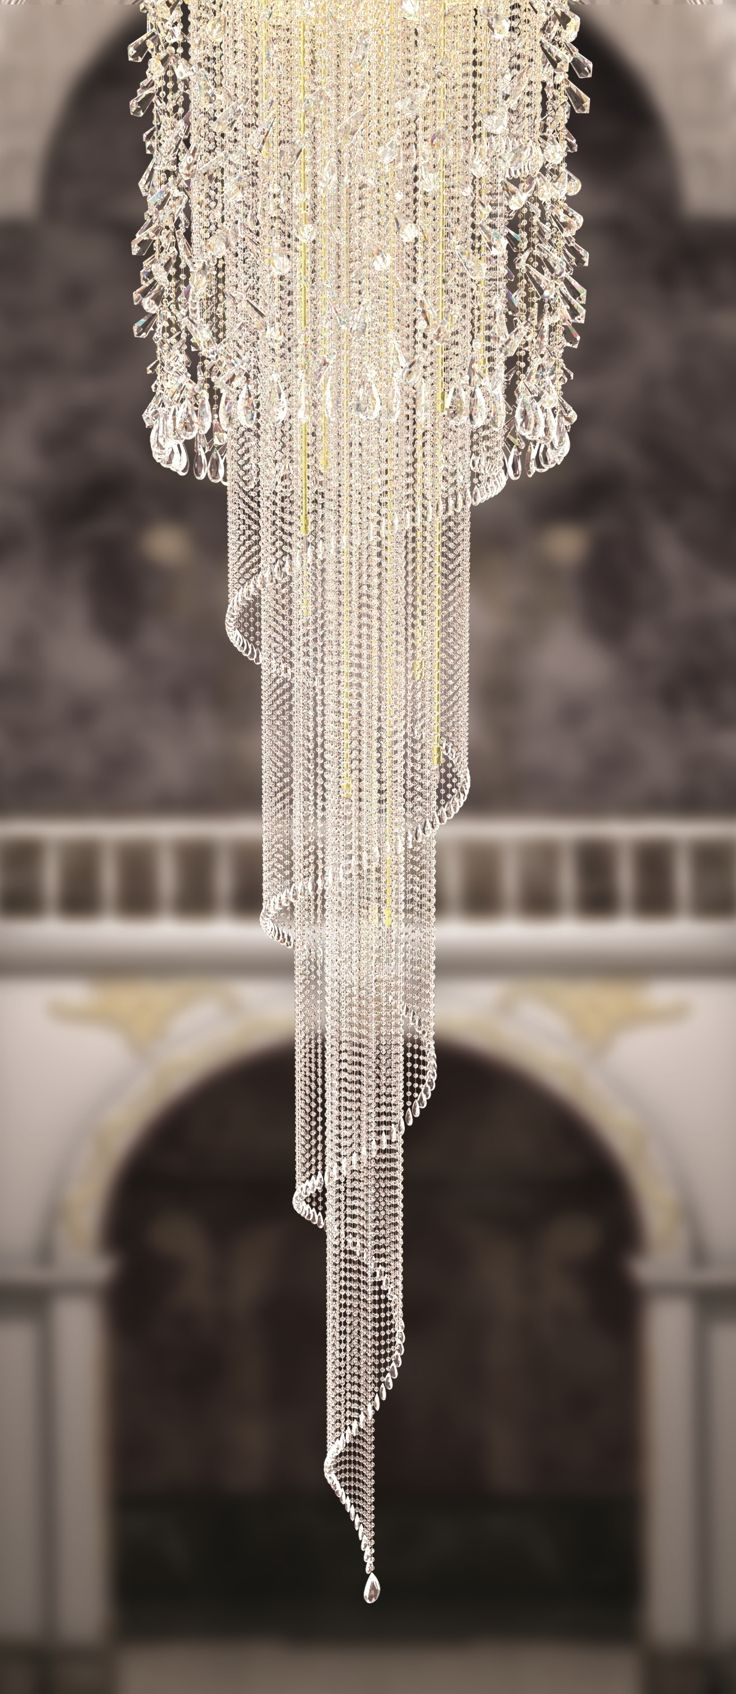 Spiral chandelier idea for with decorative crystal trimmings and spiral chandelier idea for with decorative crystal trimmings and chains interior stairs ideas arubaitofo Choice Image